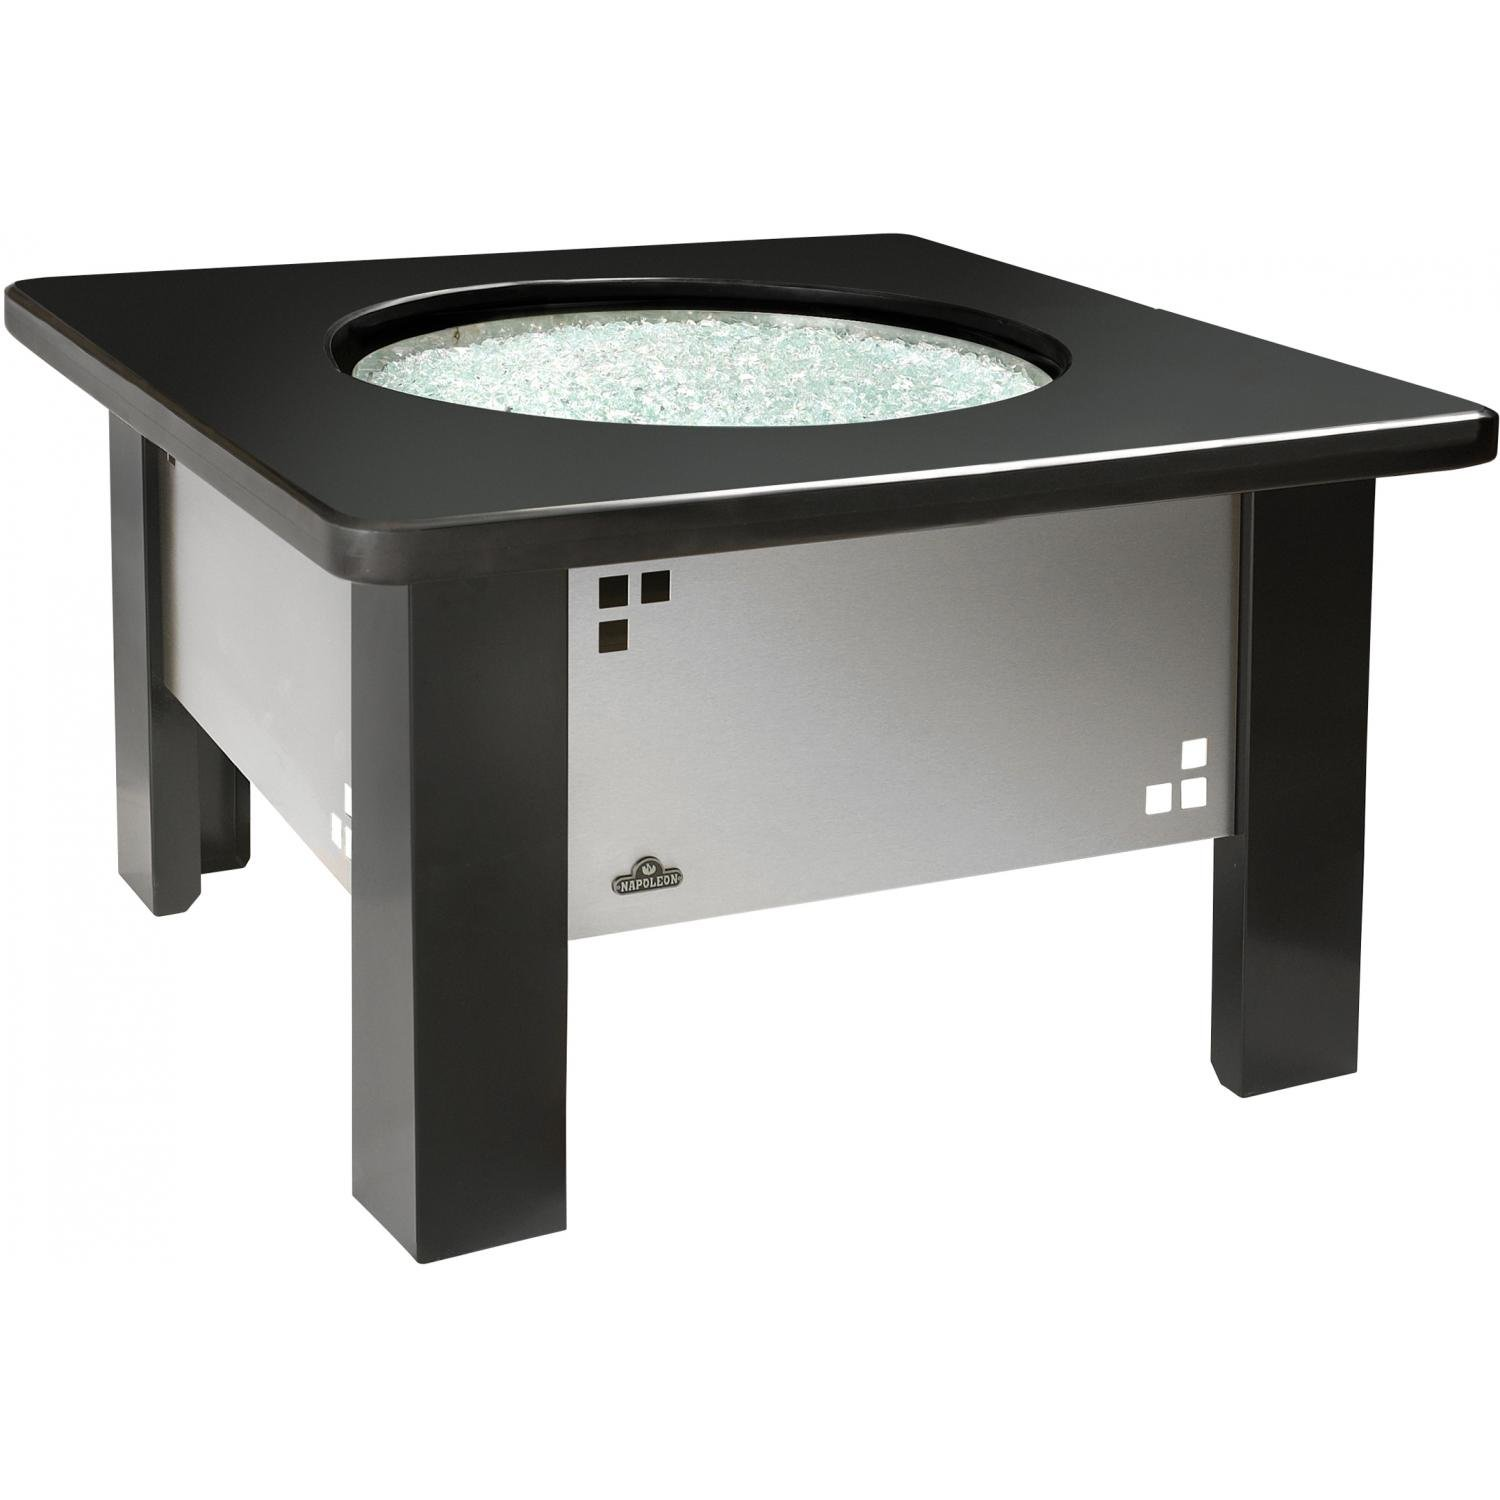 Amazon napoleon pftt gk outdoor fireplace patioflame granite amazon napoleon pftt gk outdoor fireplace patioflame granite table top black kitchen dining geotapseo Image collections